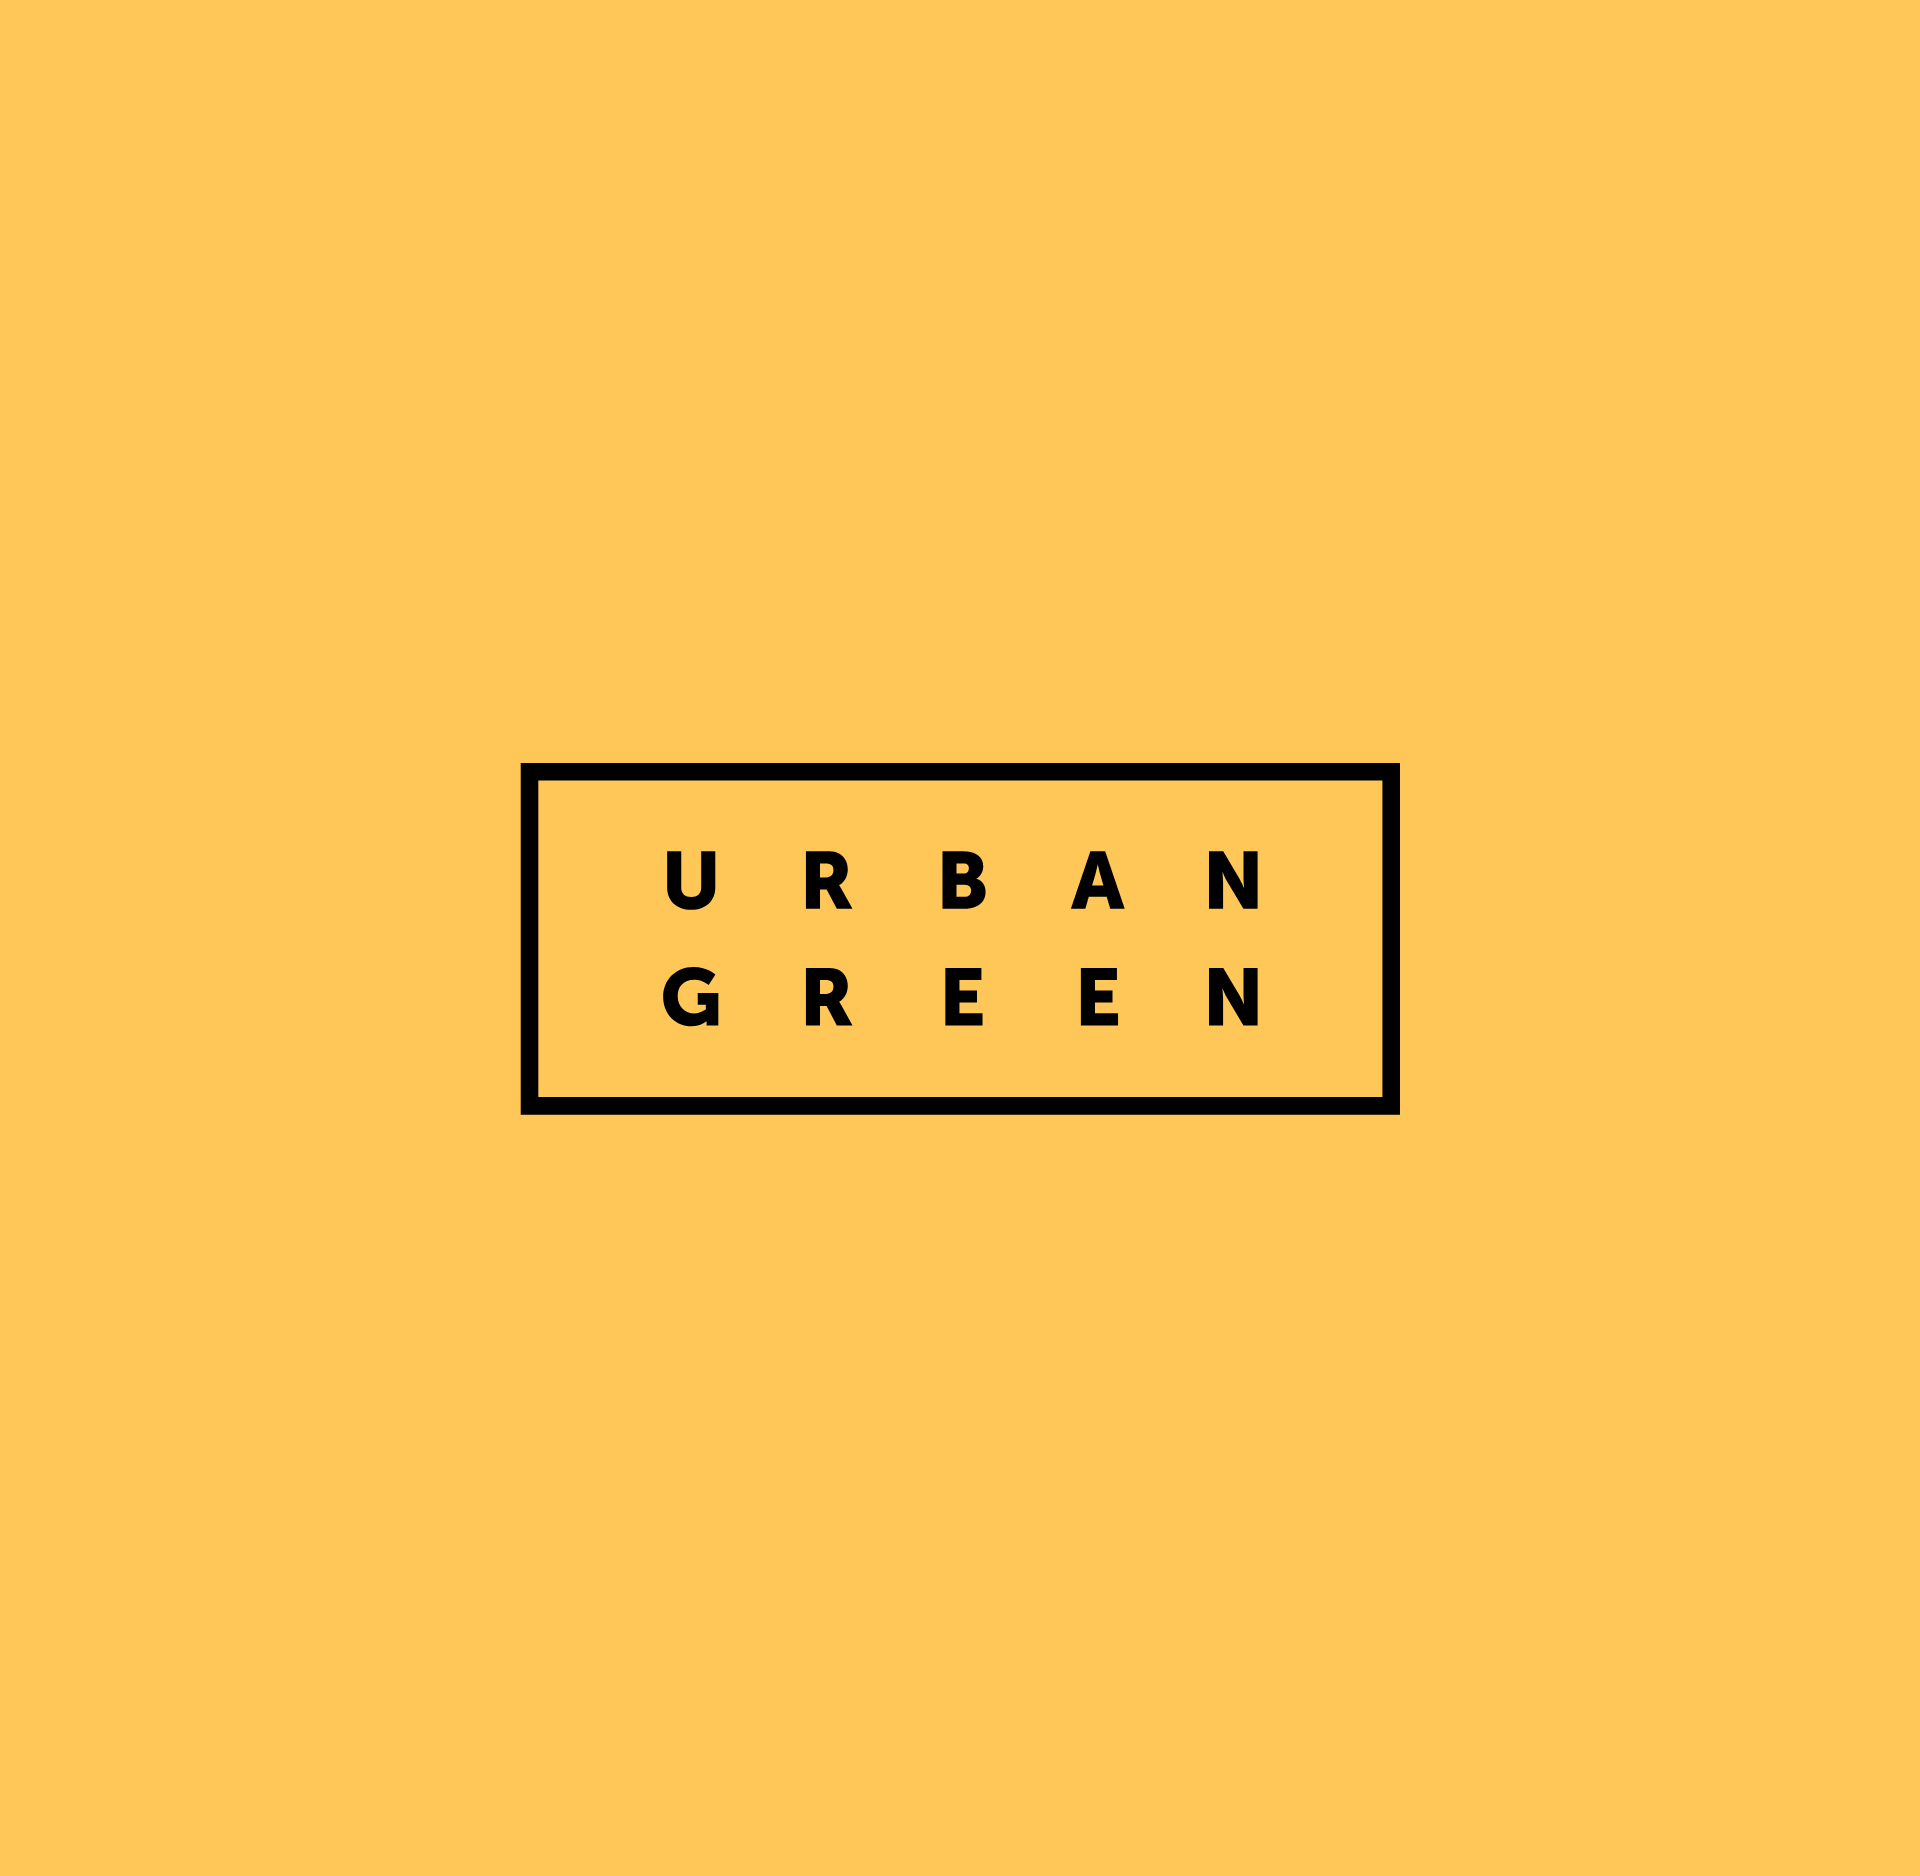 Urban Green's logo in black on a sandy yellow. The logo is made up of the words Urban Green spaced out evenly within a rectangular hollow box.